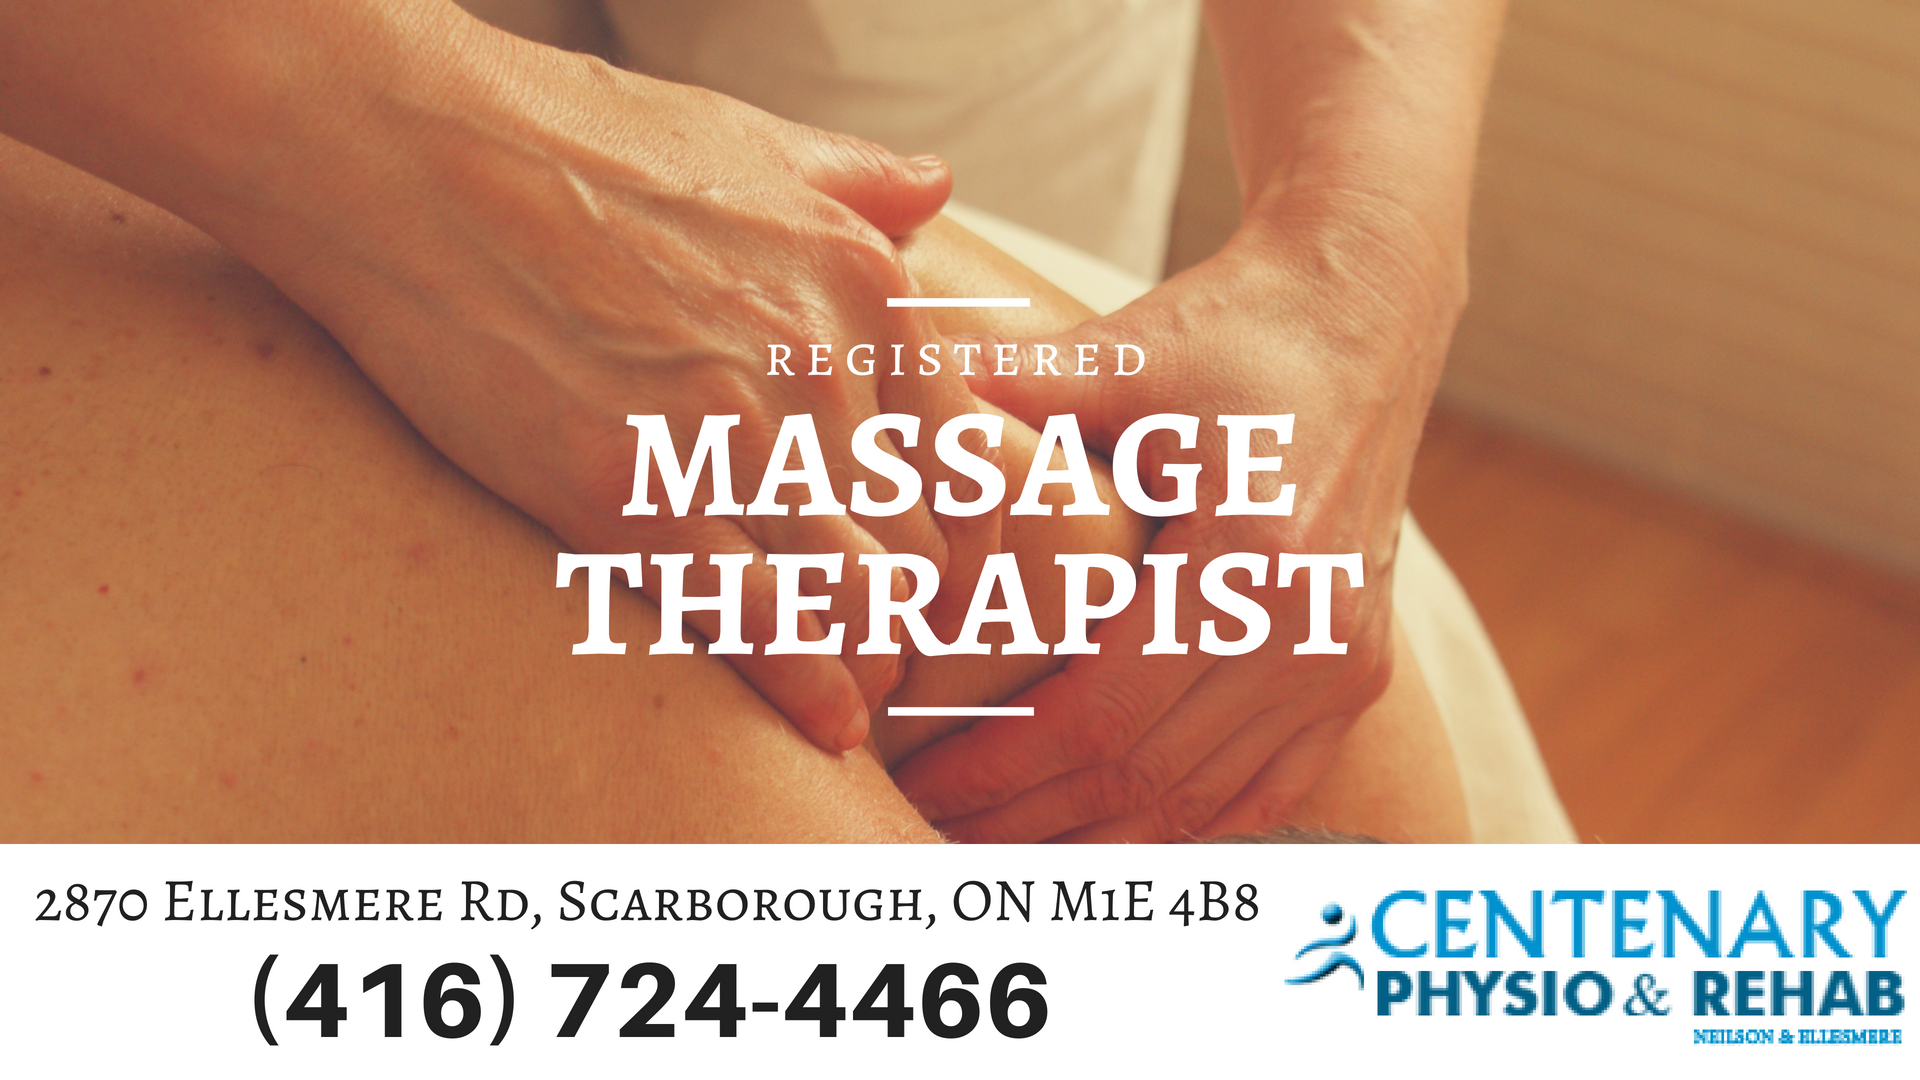 Guangping Song (Sam) - Registered Massage Therapist Scarborough